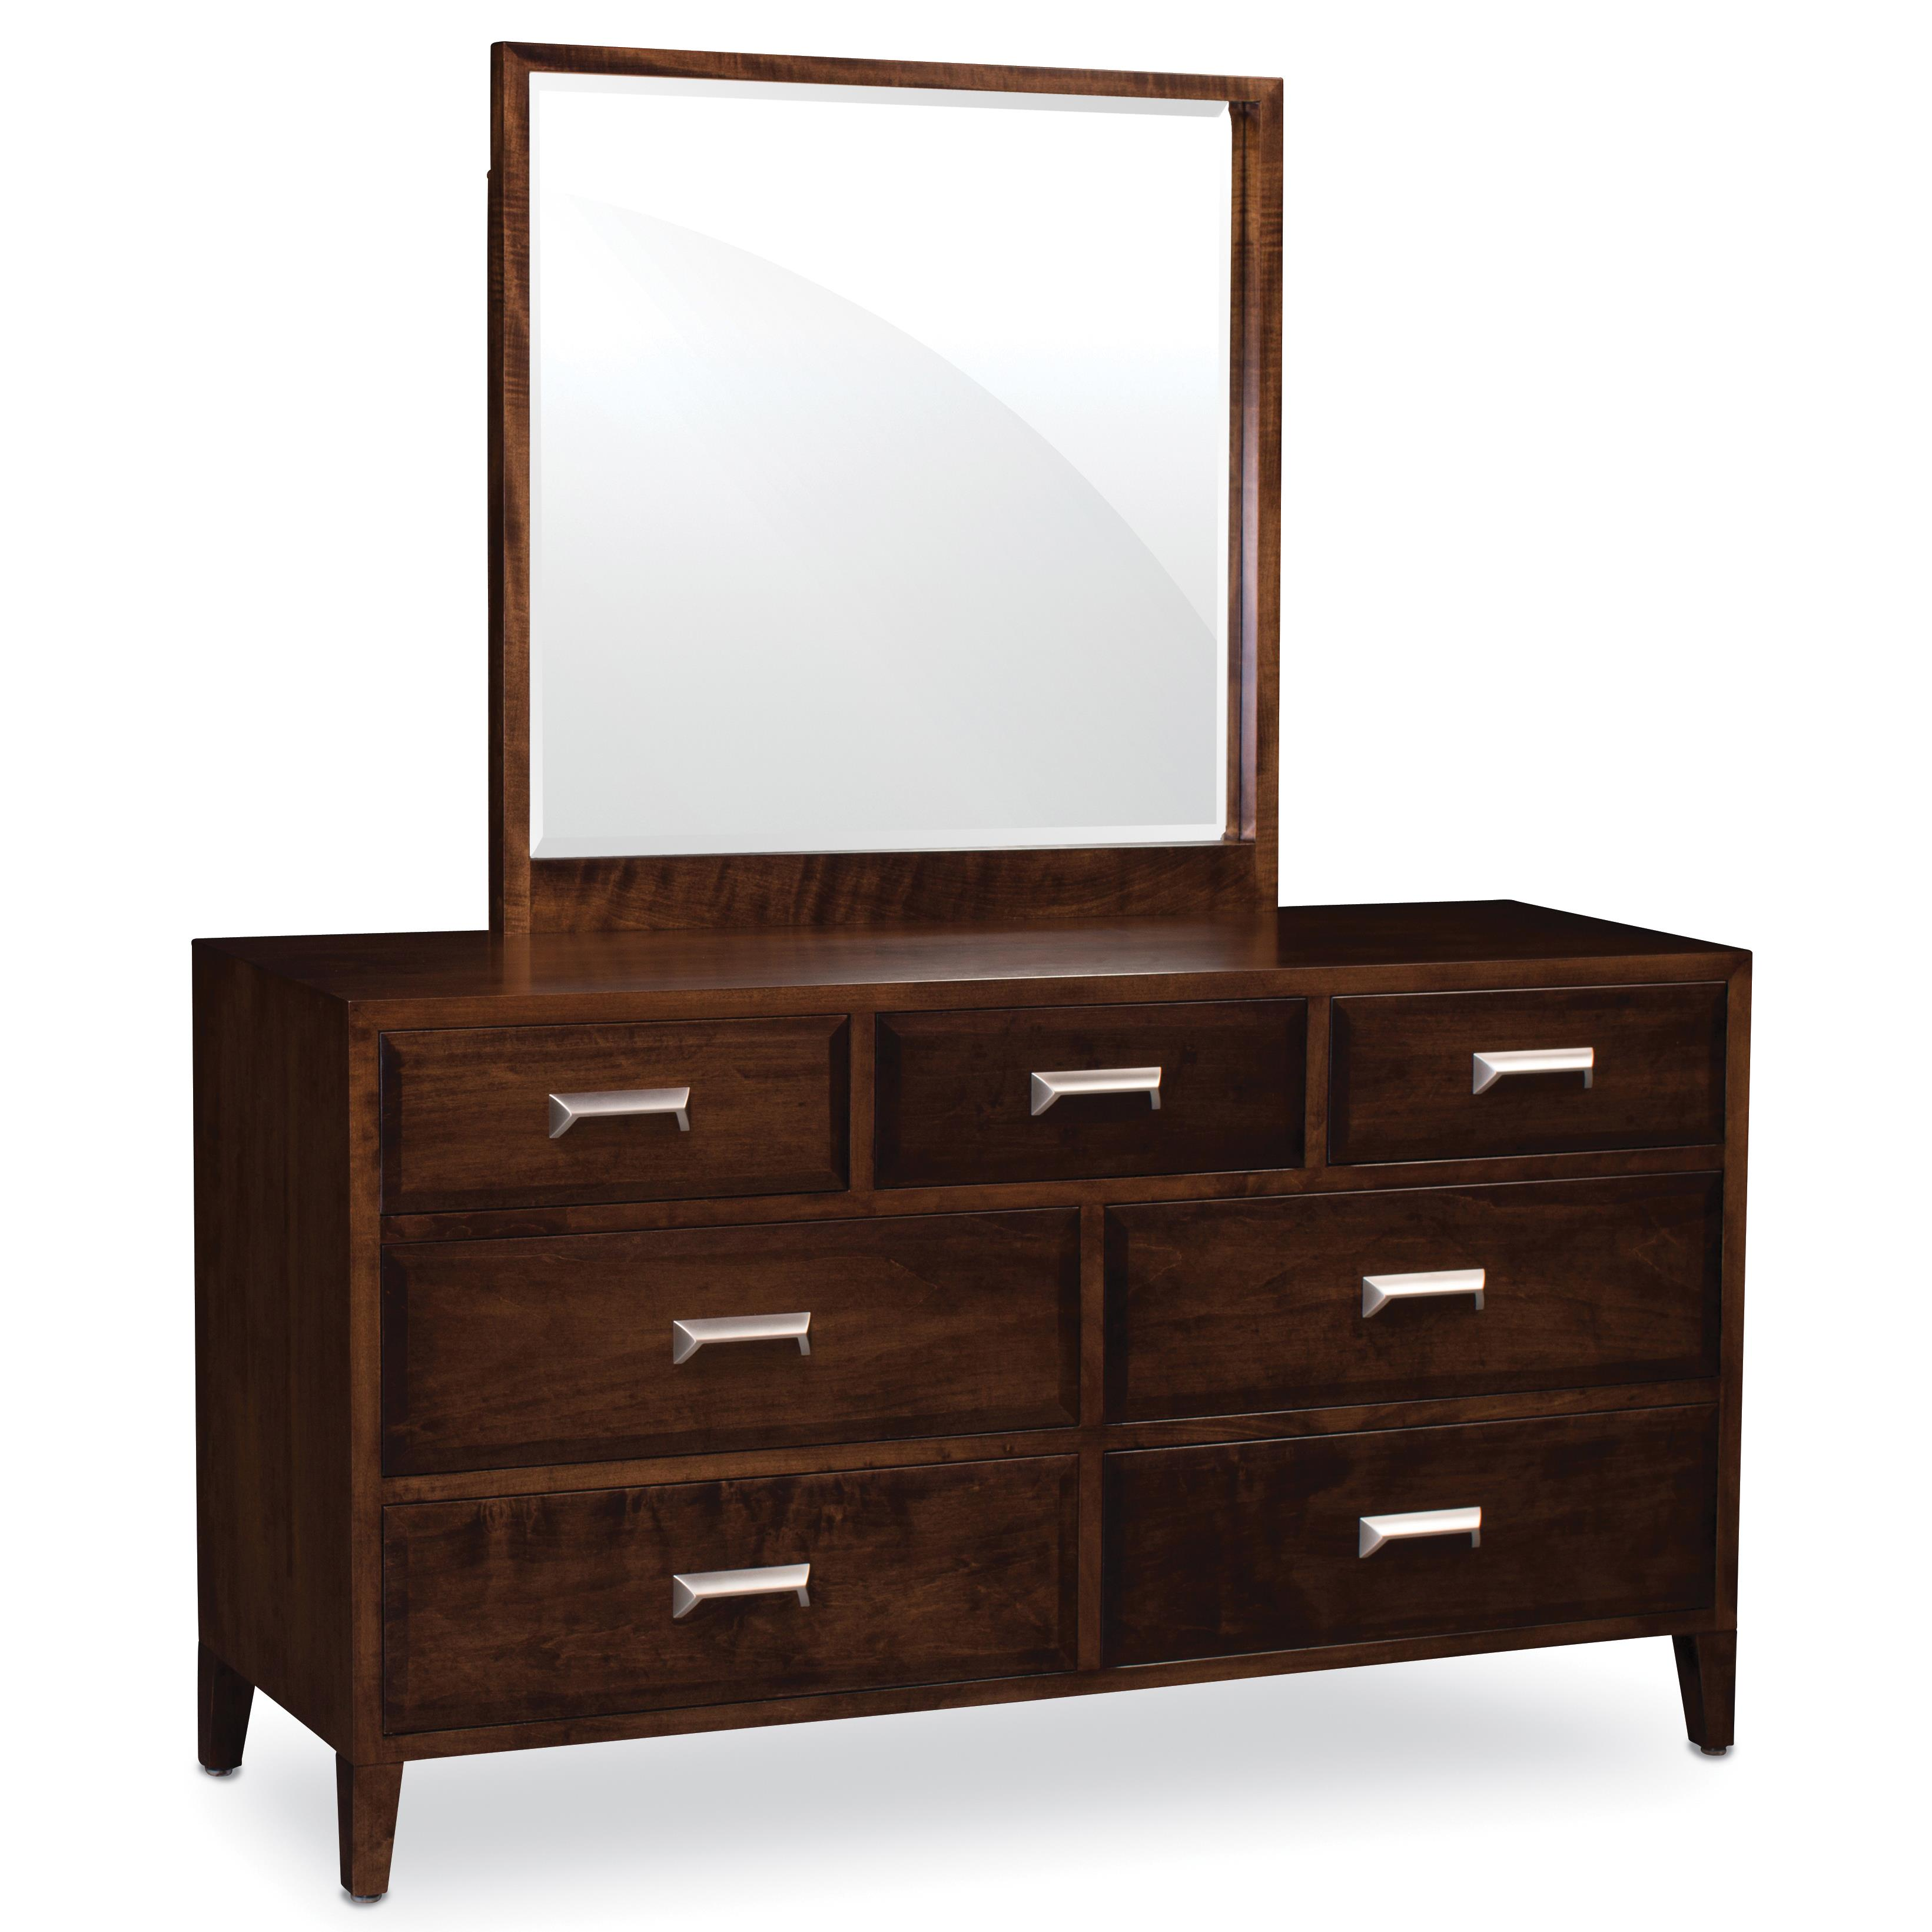 Beaumont SA Dresser and Mirror Set by Simply Amish at Becker Furniture